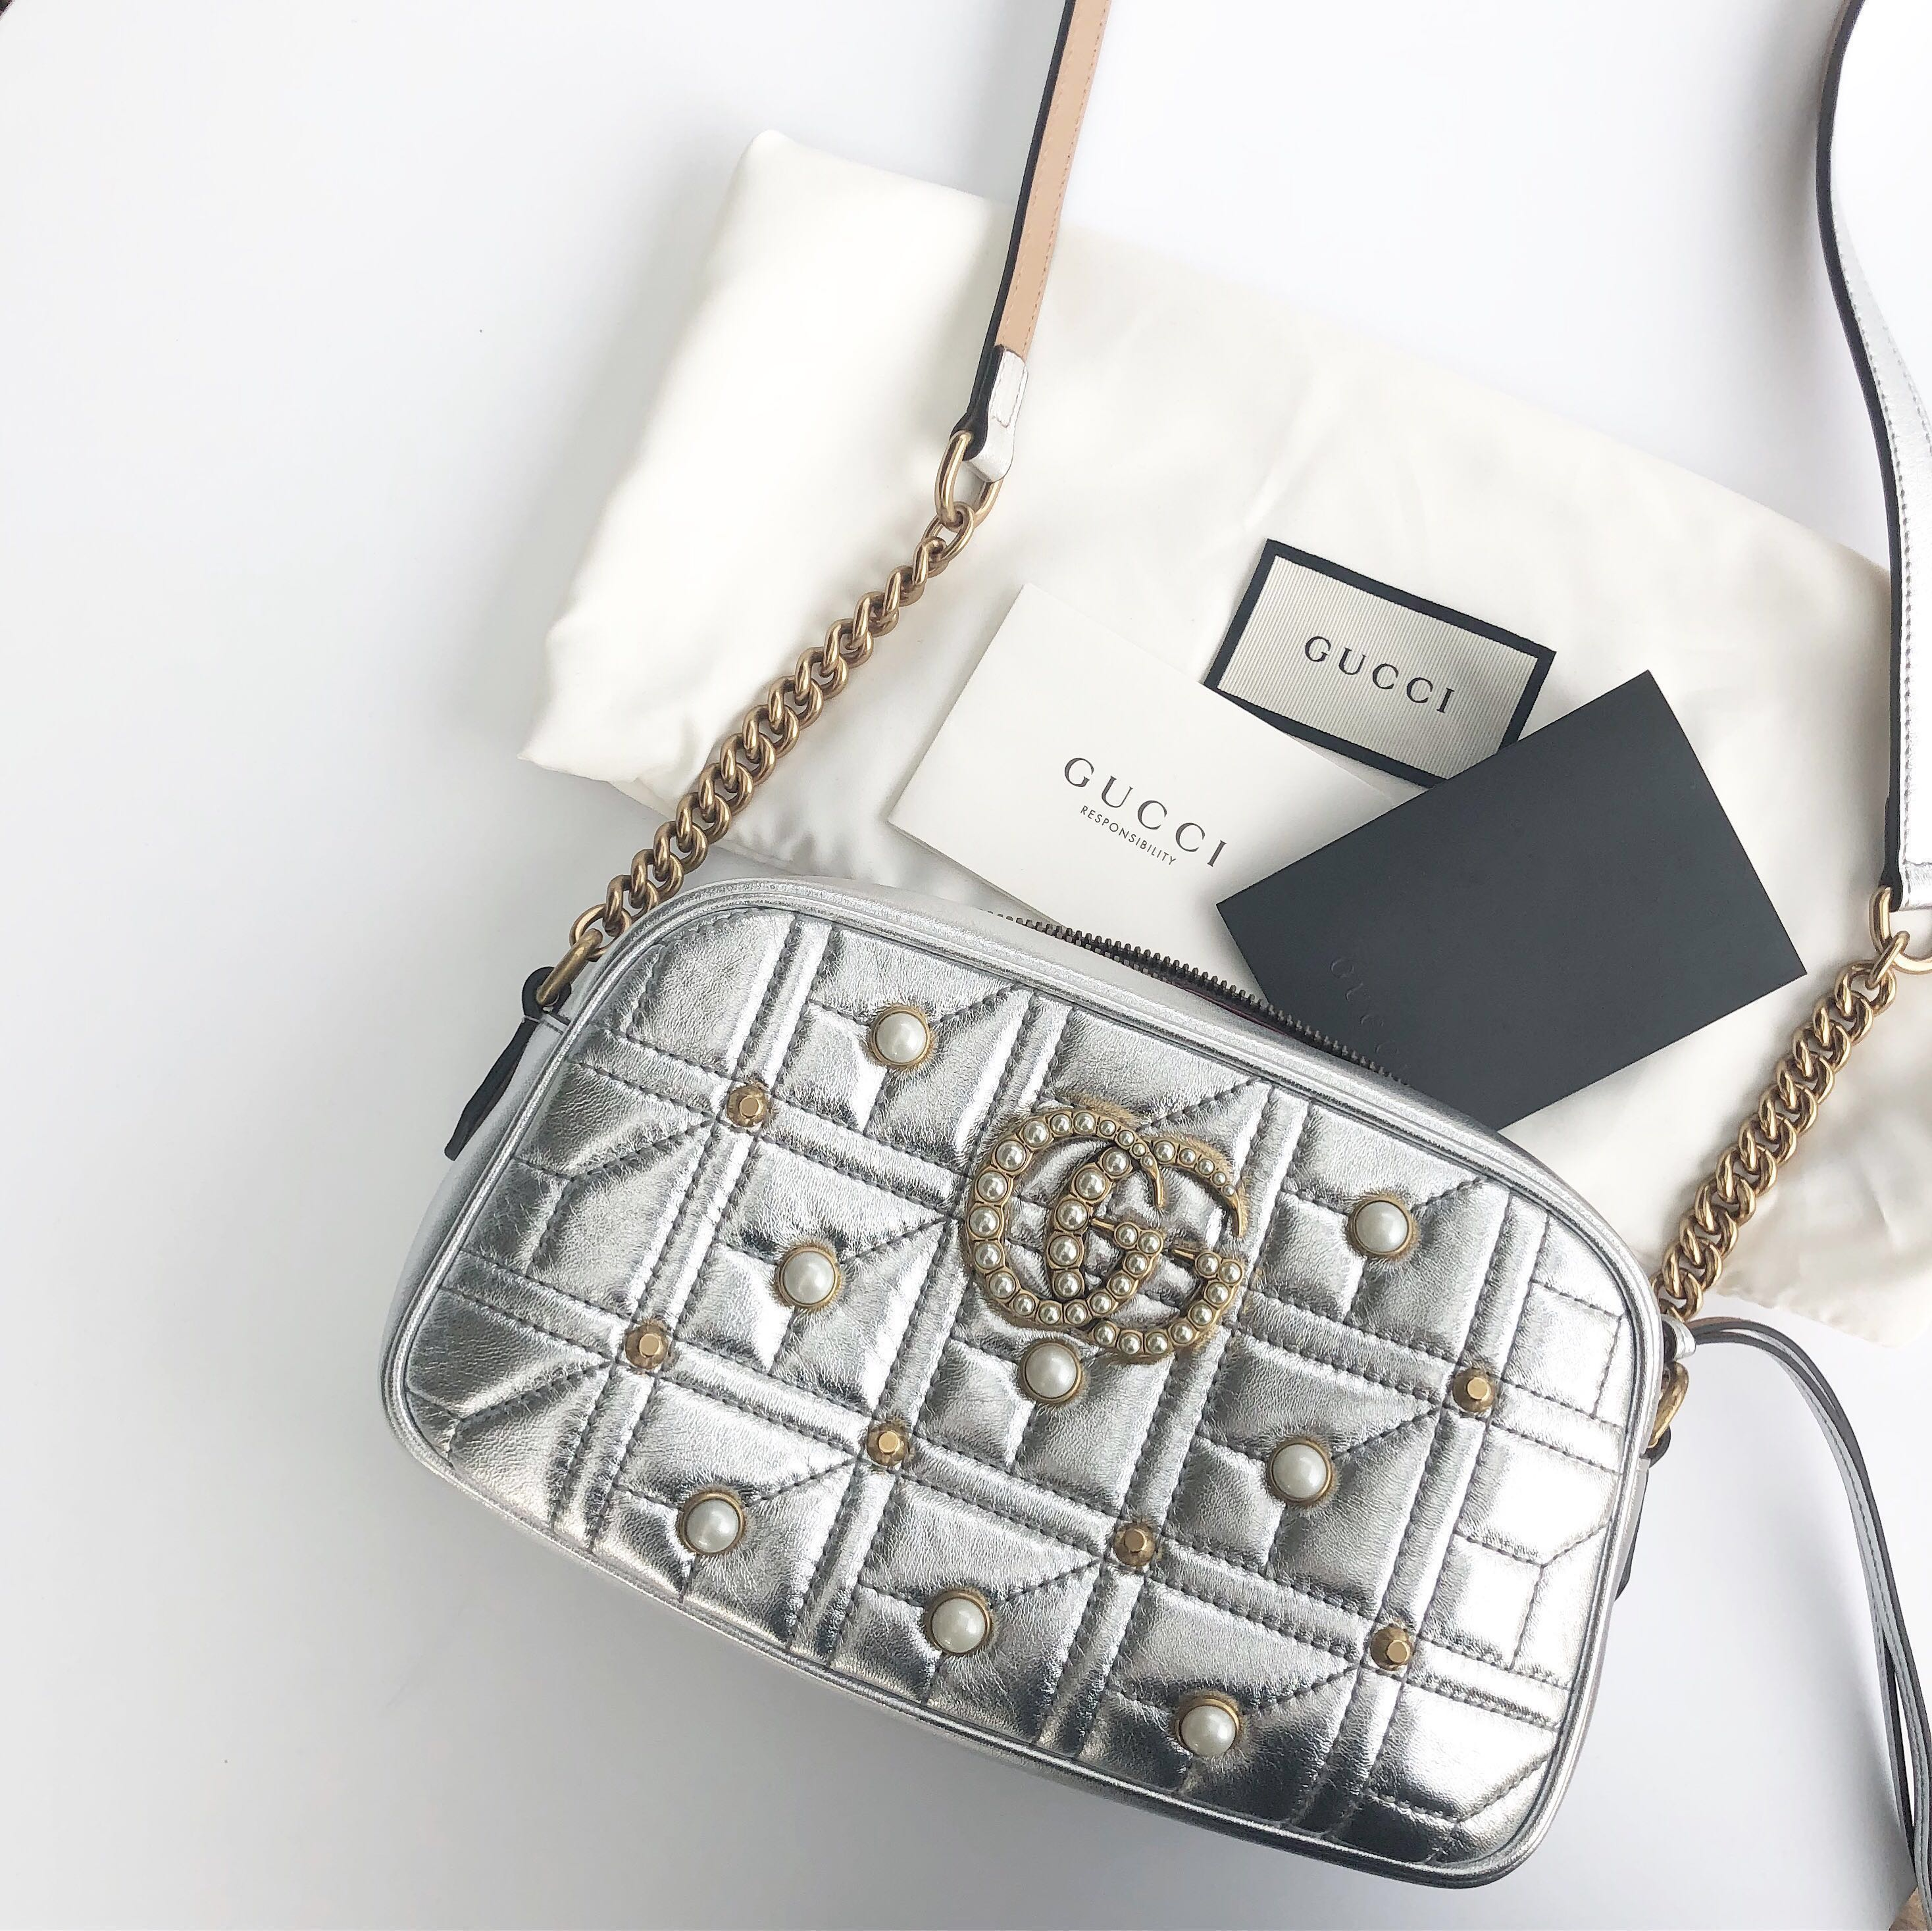 70627c626415 Gucci GG Marmont Pearl Matelasse Shoulder Bag Silver Metallic, Women's  Fashion, Bags & Wallets, Handbags on Carousell